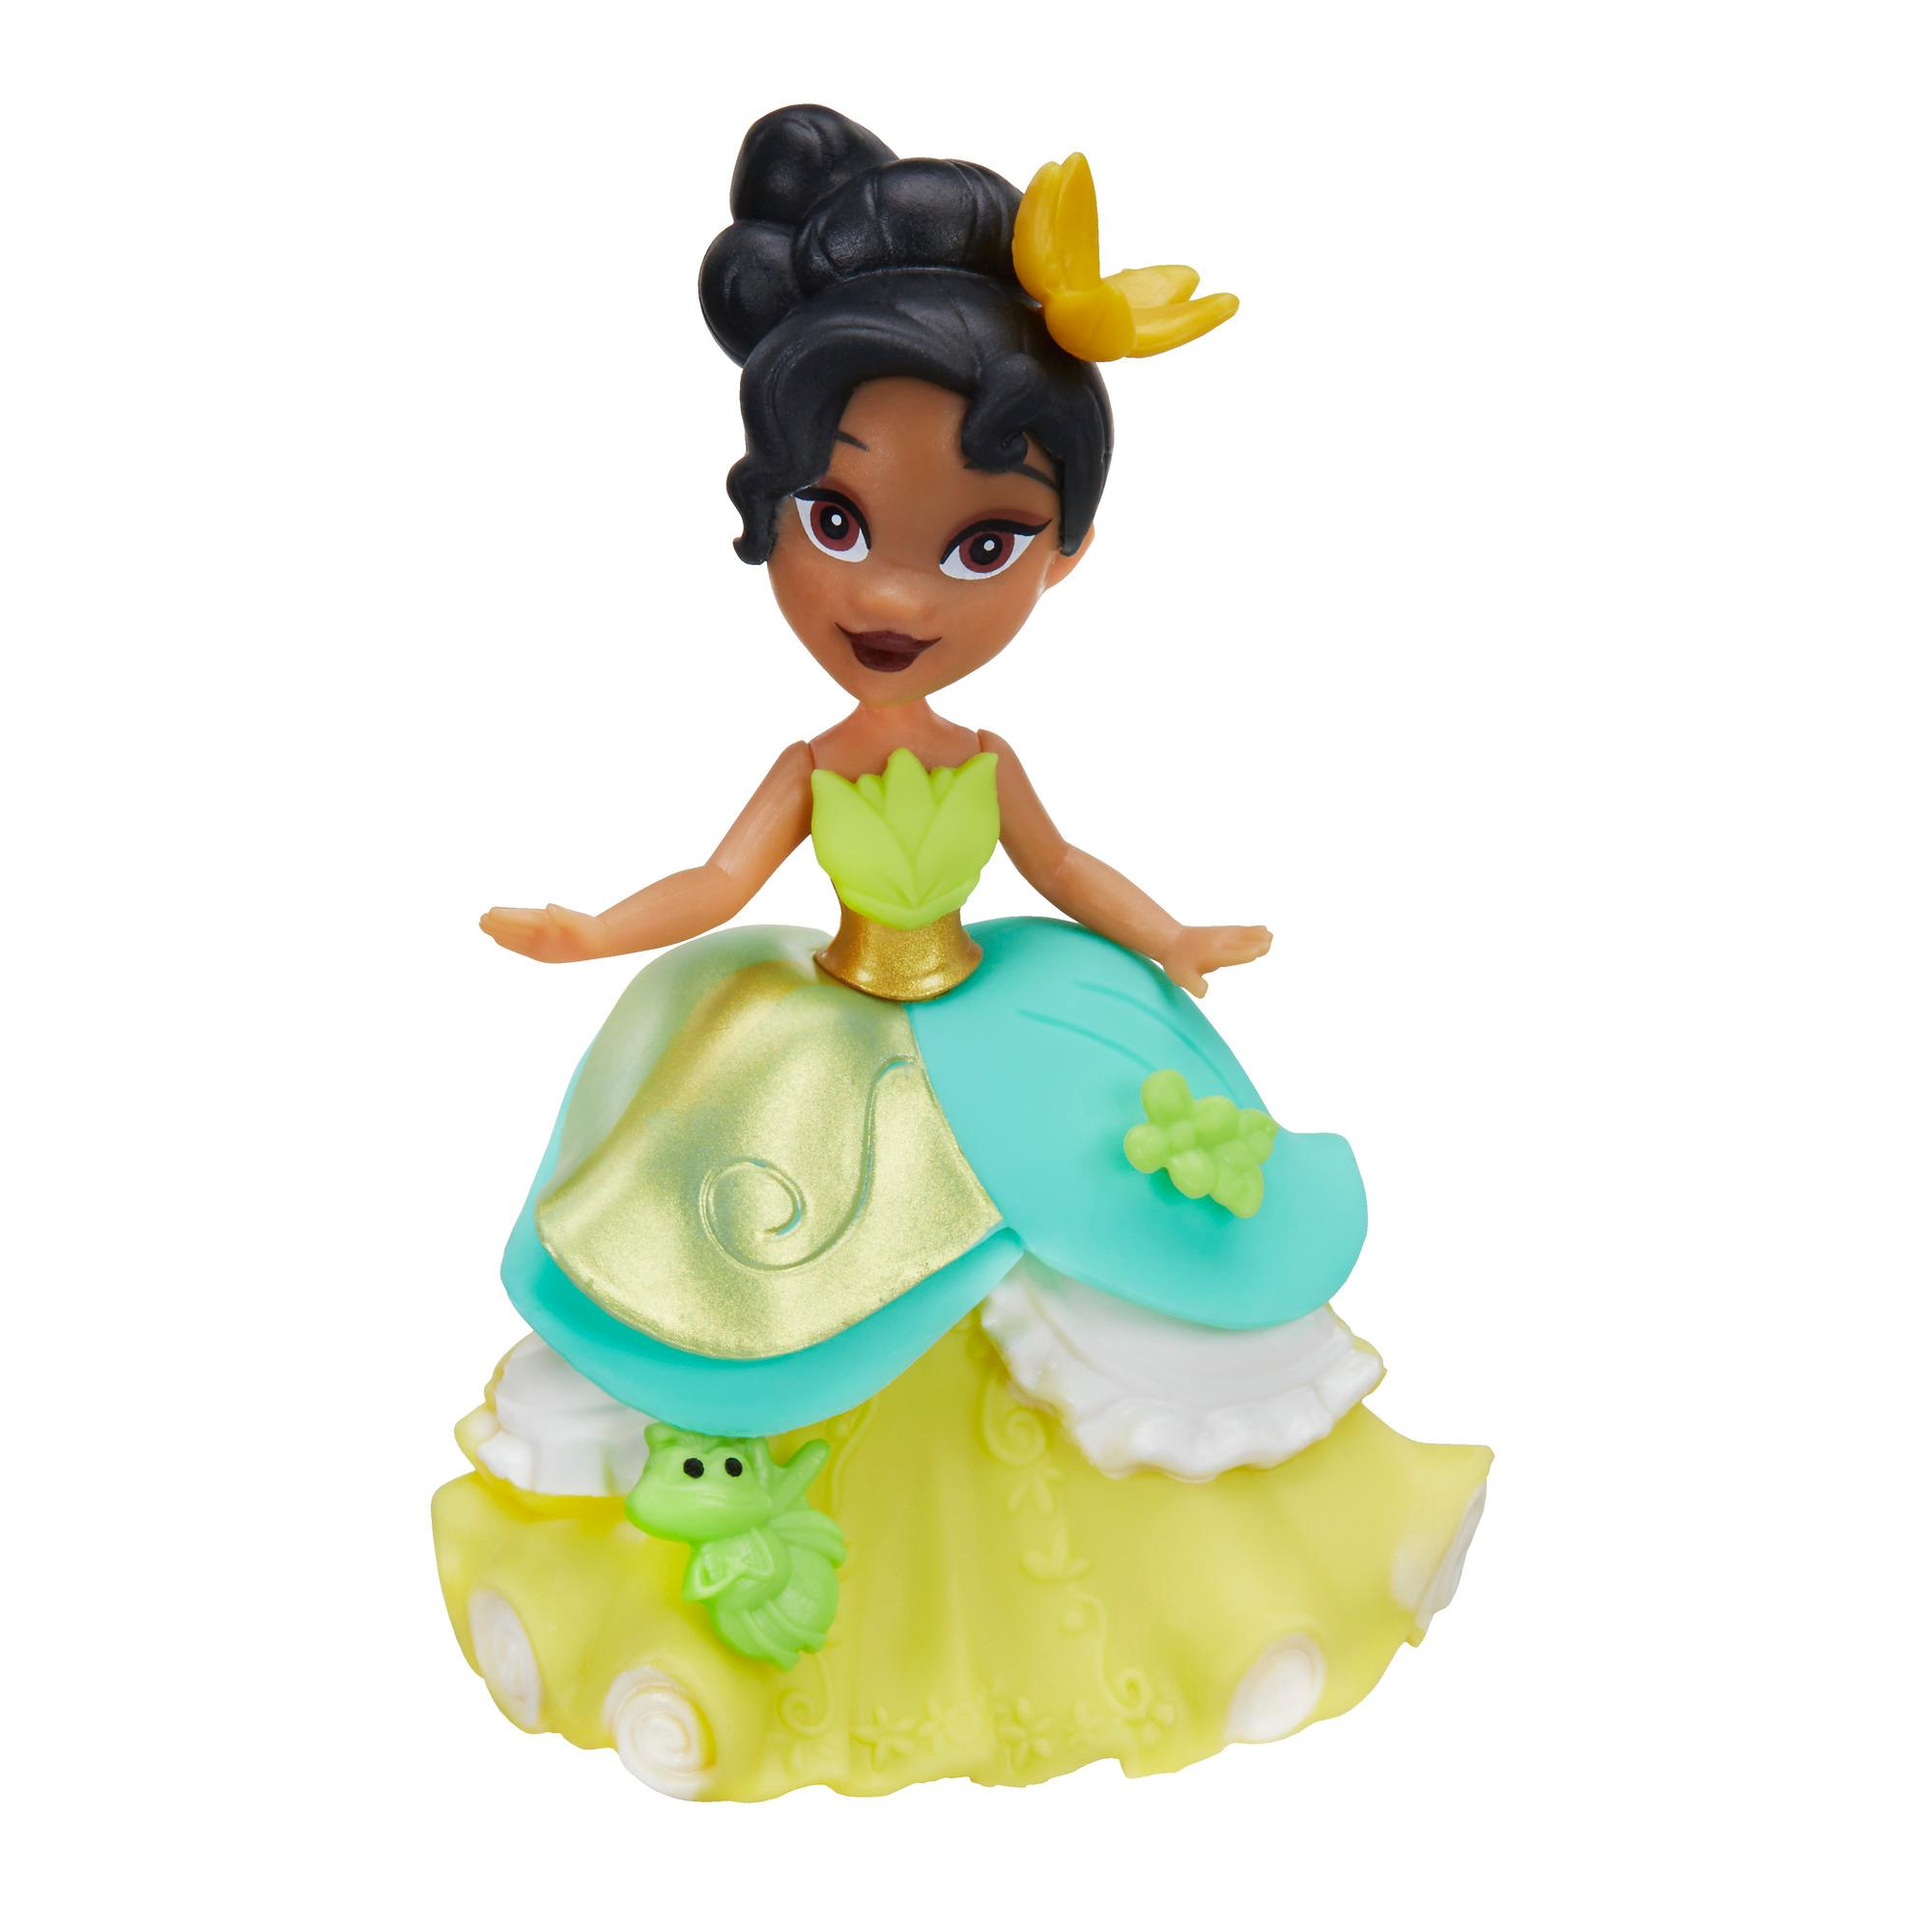 Disney Princess Little Kingdom Classic Tiana